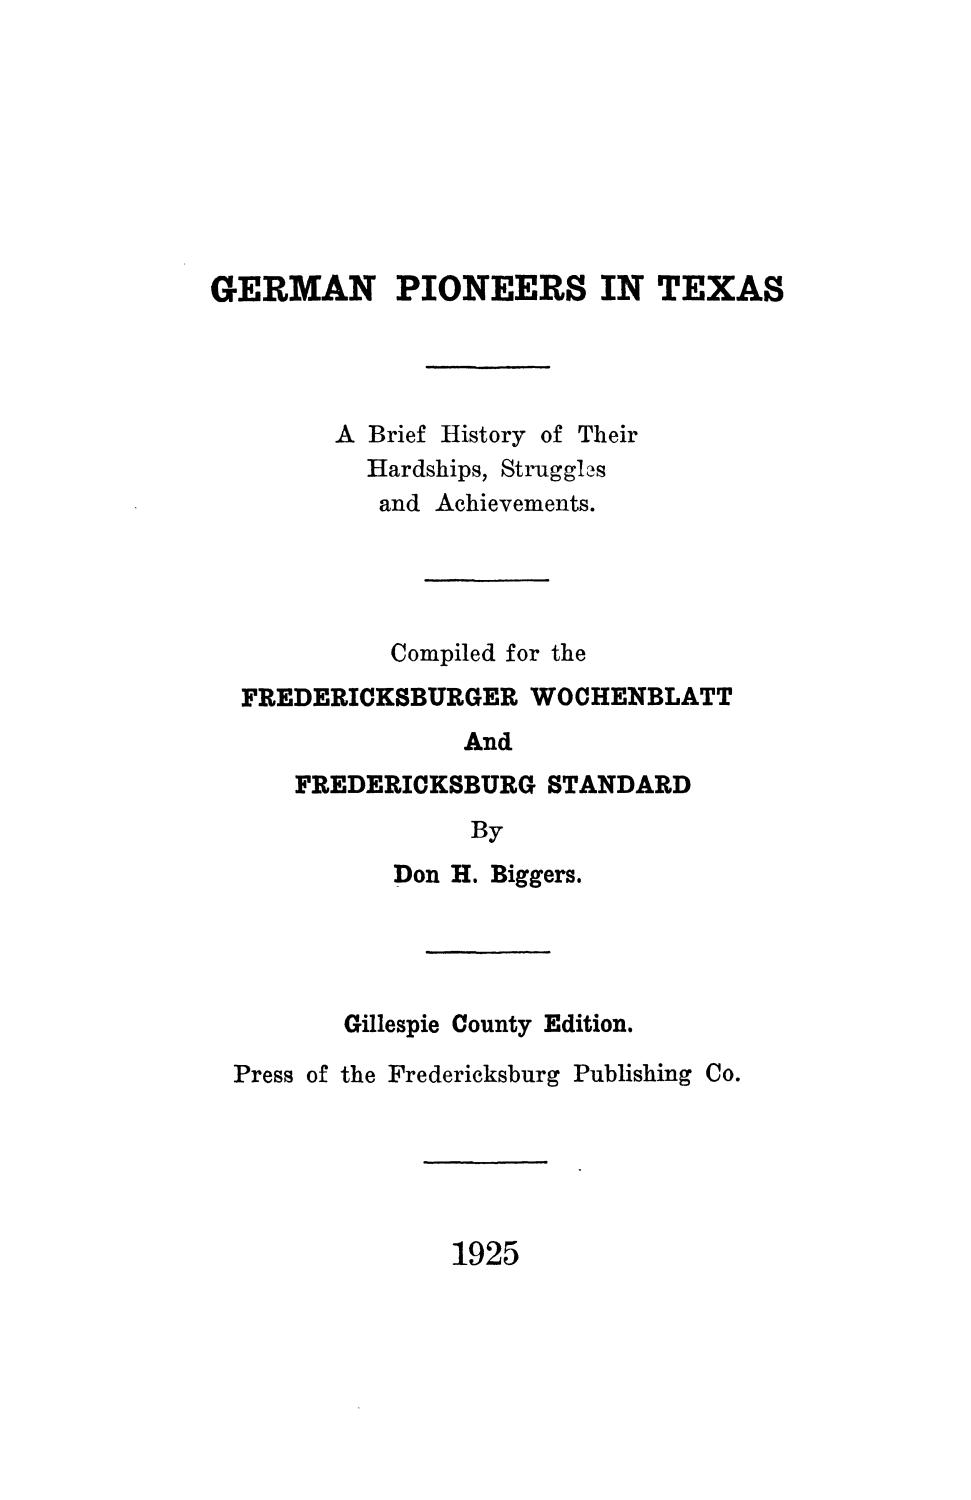 German Pioneers in Texas; A Brief History of Their Hardships, Struggles and Achievements                                                                                                      Title Page